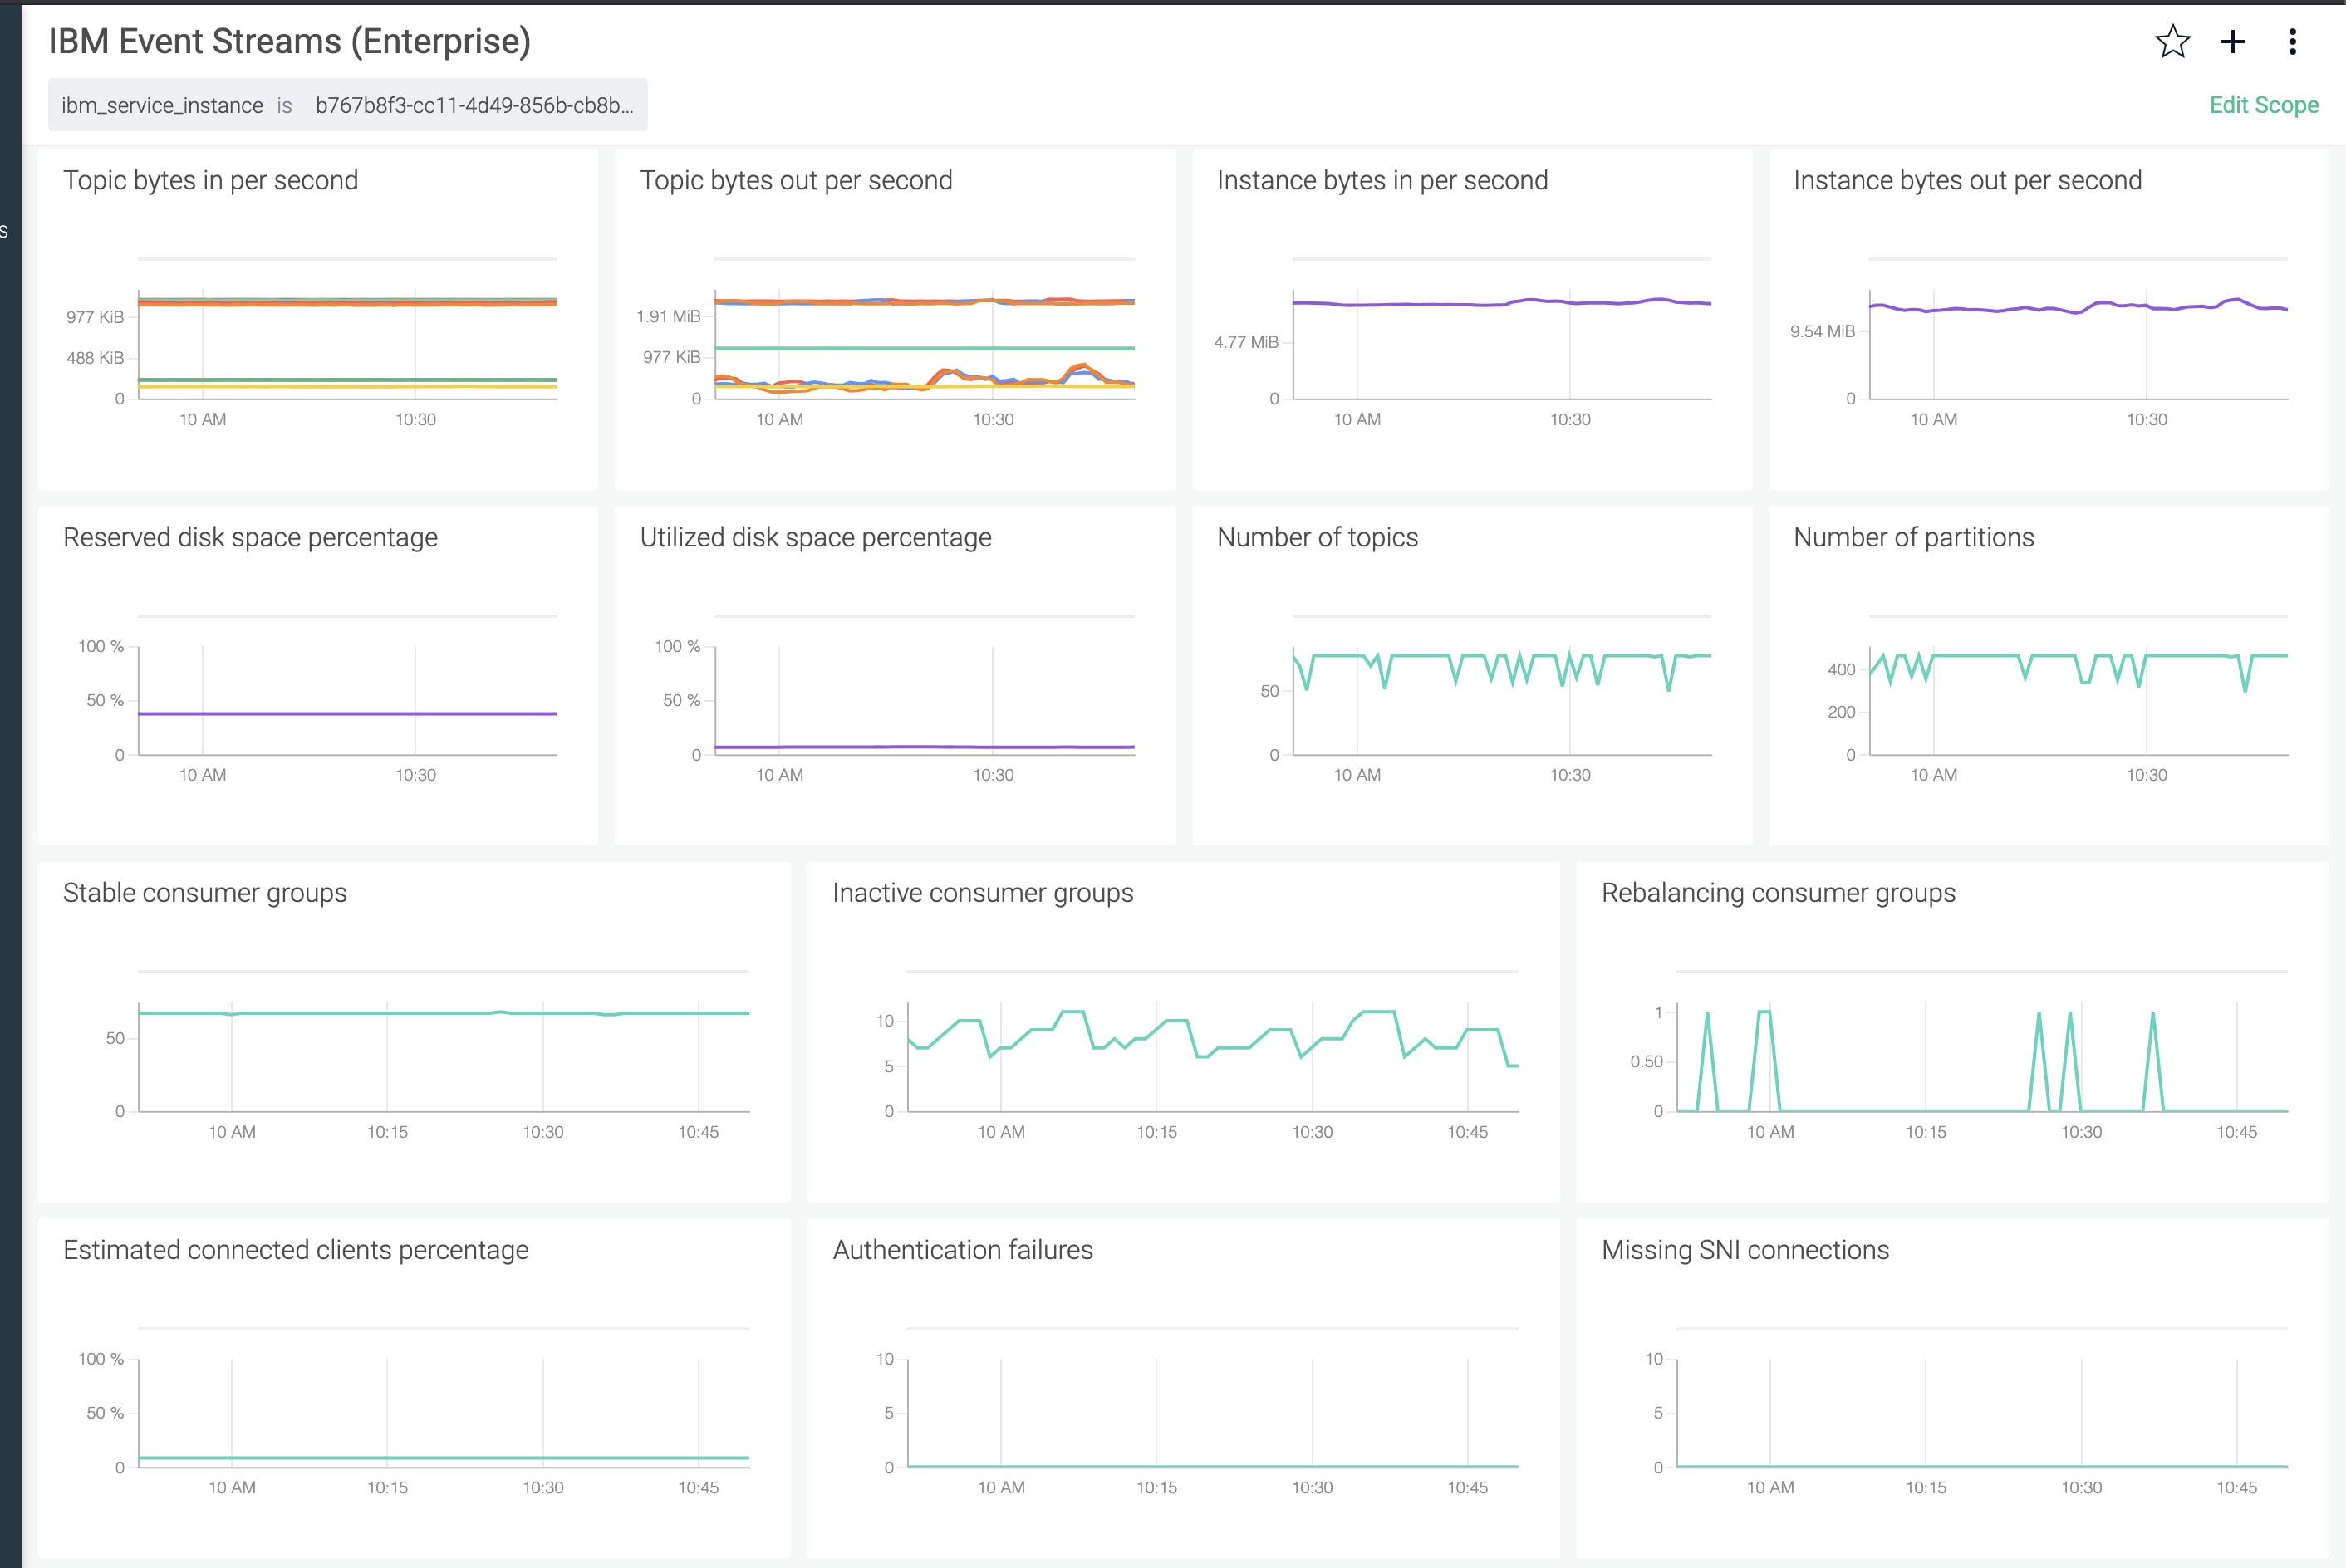 Metrics for IBM Event Streams